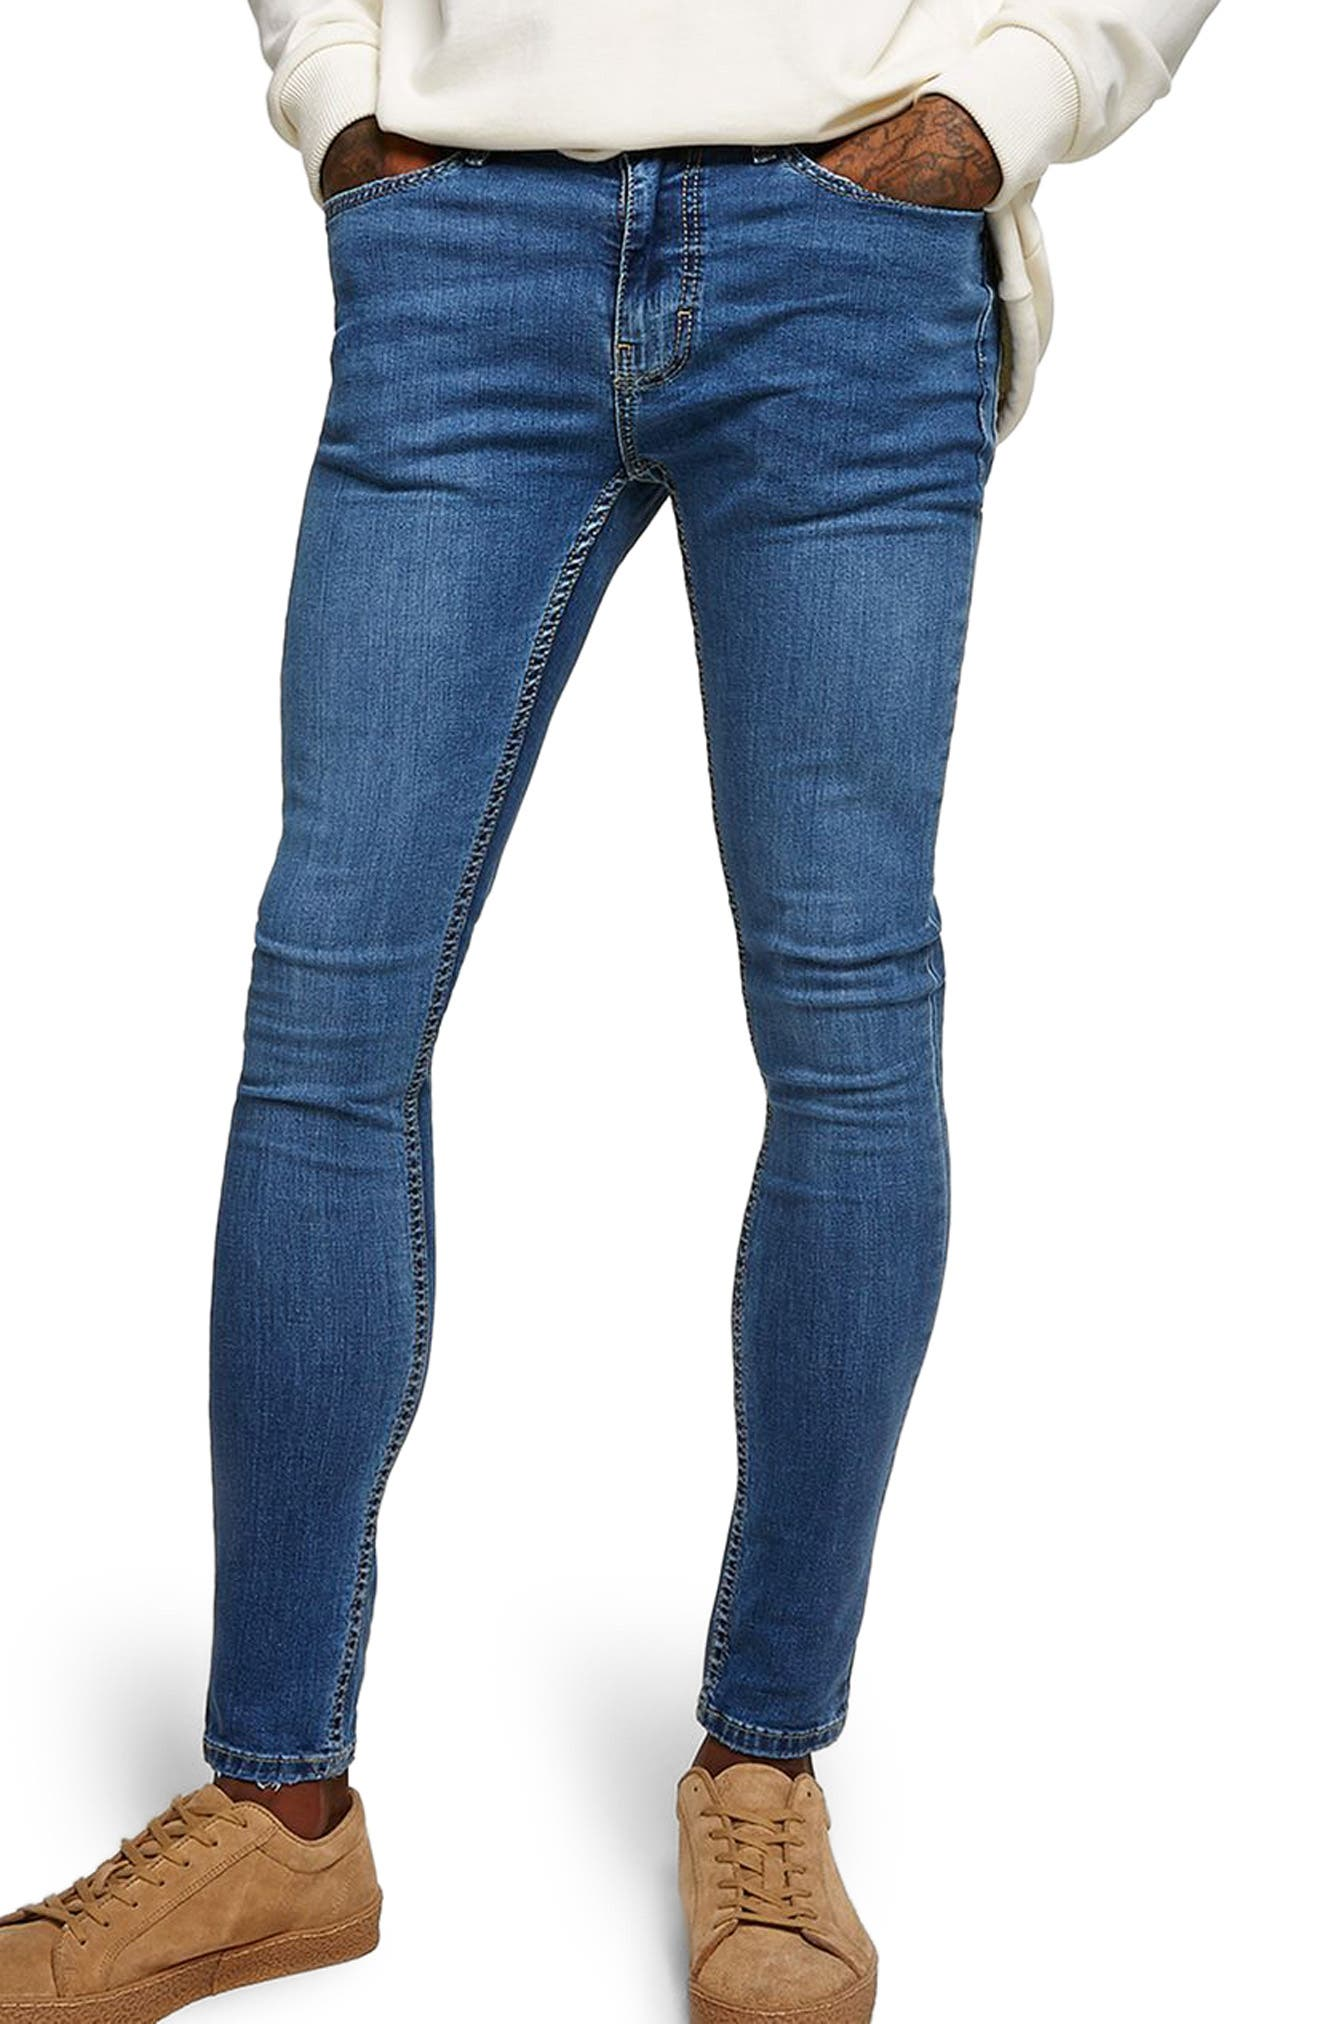 Skinny Fit Spray-On Jeans,                             Main thumbnail 1, color,                             400